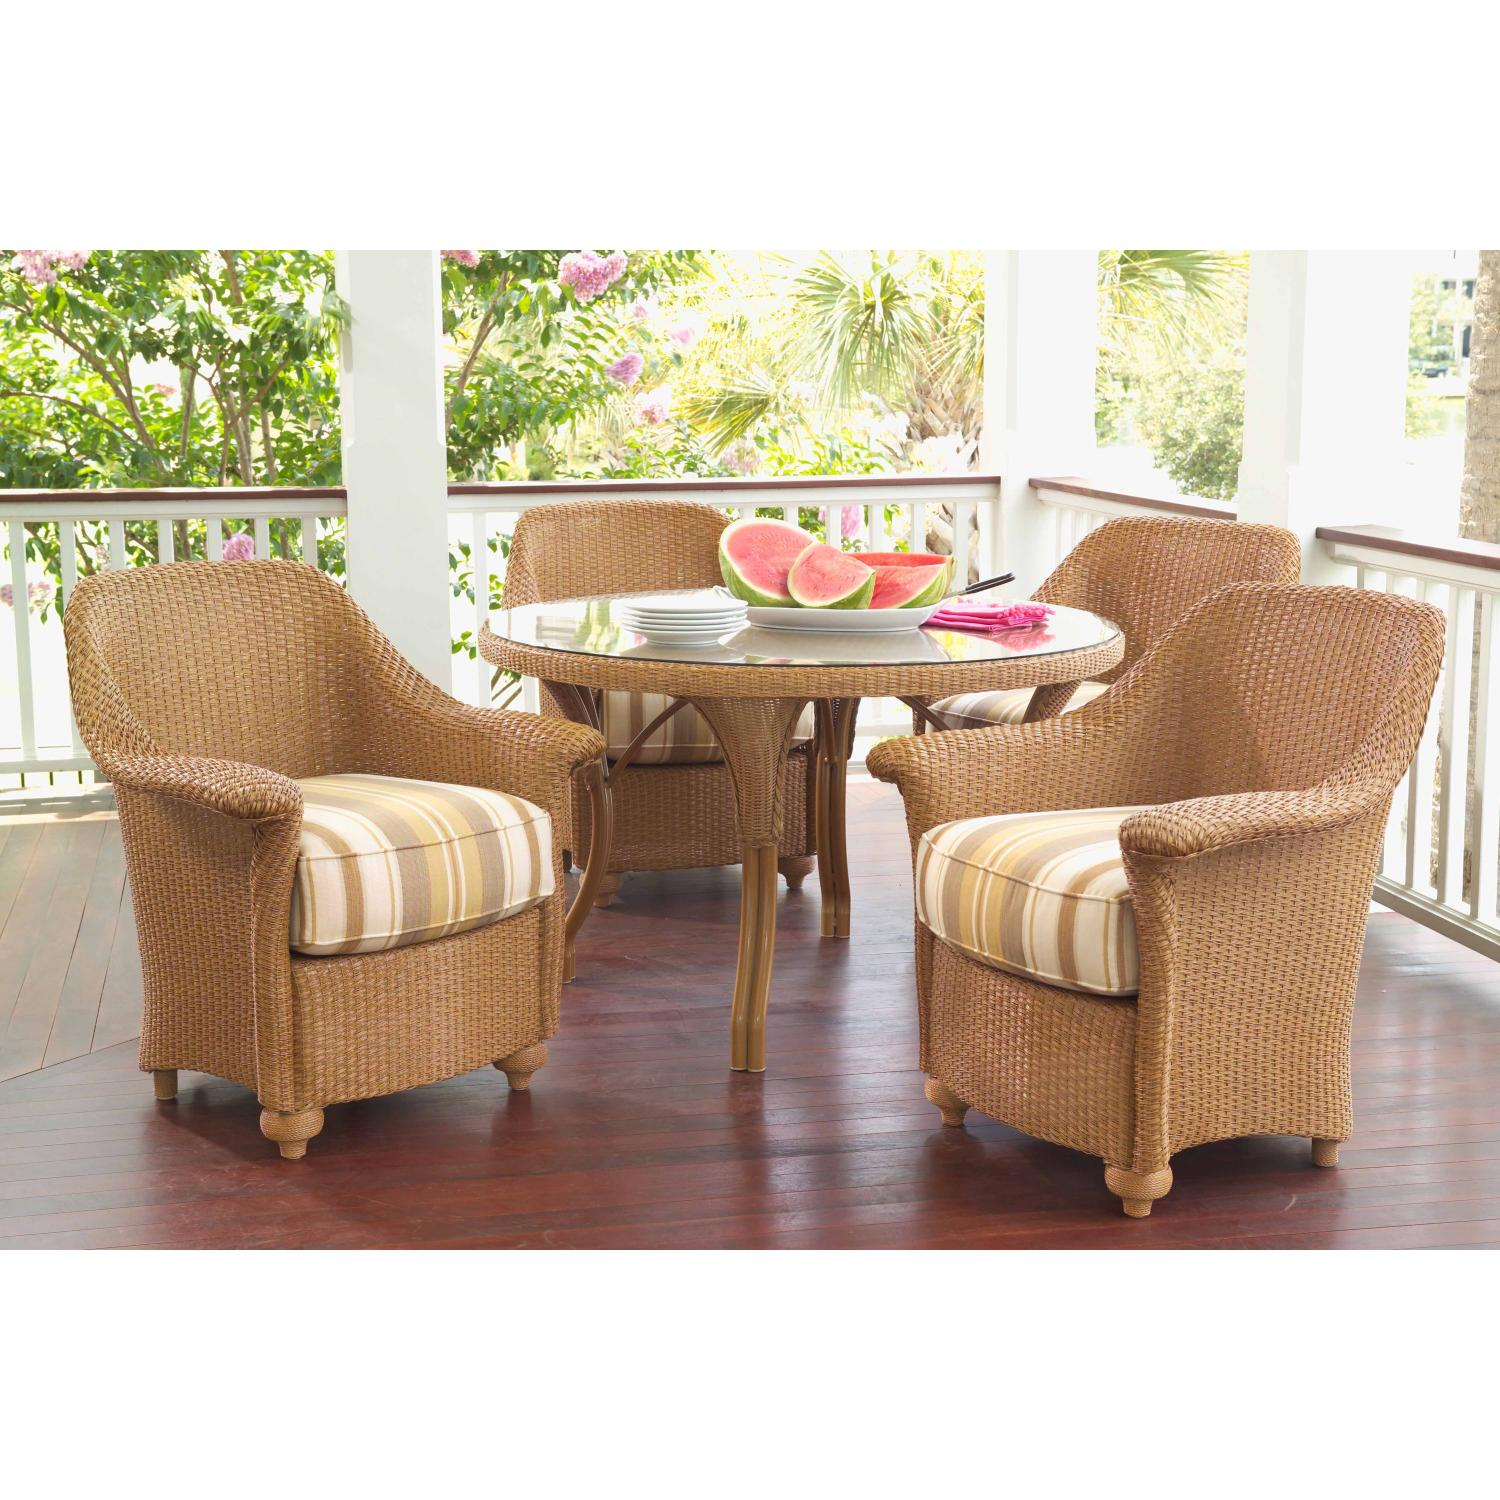 Lloyd Flanders Oxford Lloyd Loom Wicker Outdoor Patio Dining Set - Bamboo Finish - 5 Piece Set